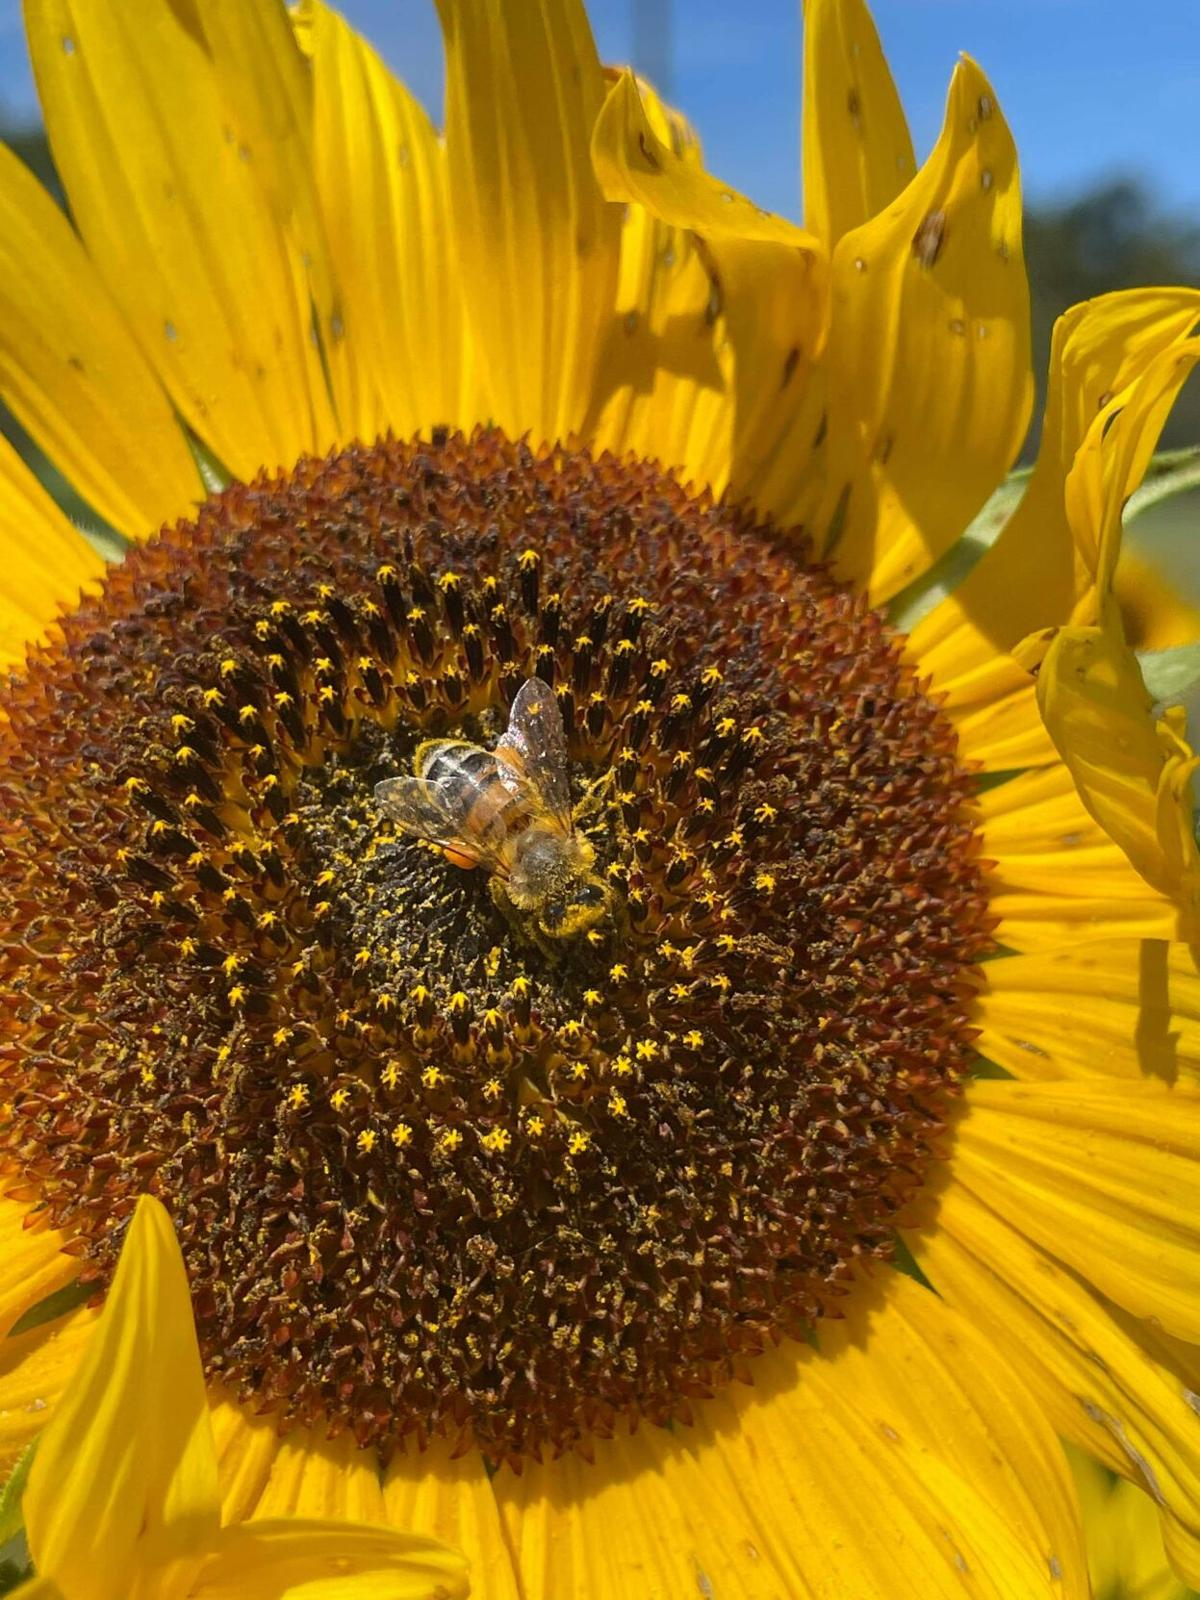 Pollen producing sunflowers are perfect for home gardeners who are planting to support pollinatorsjpg.jpg